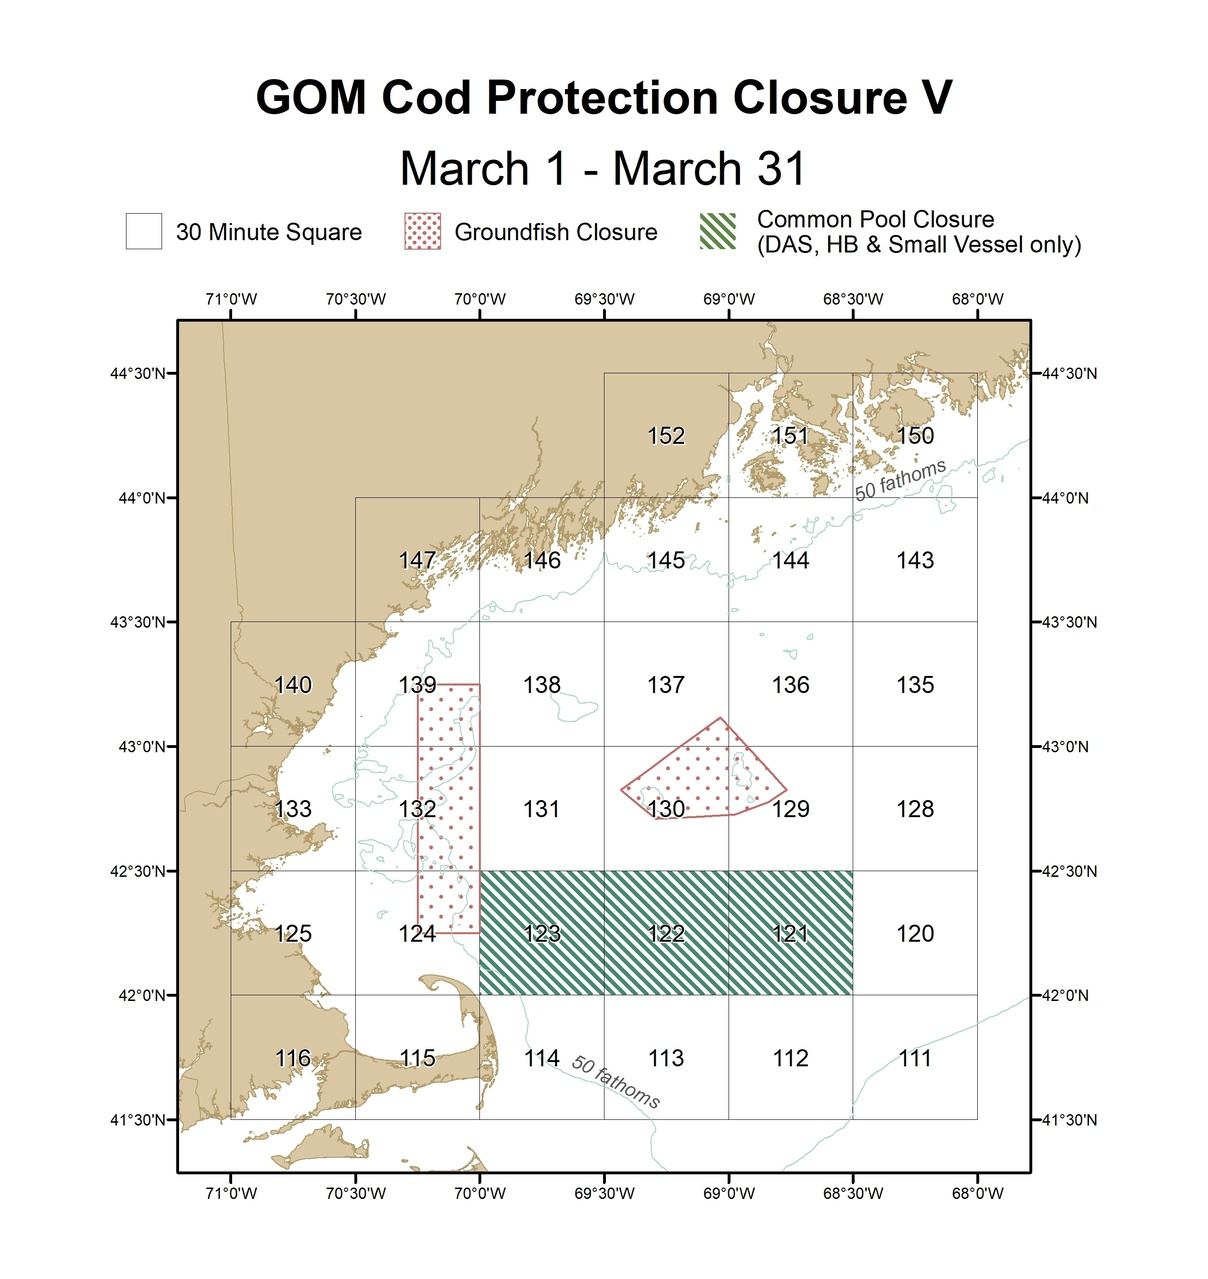 GOM_Cod_Protection_Closure_V.jpg